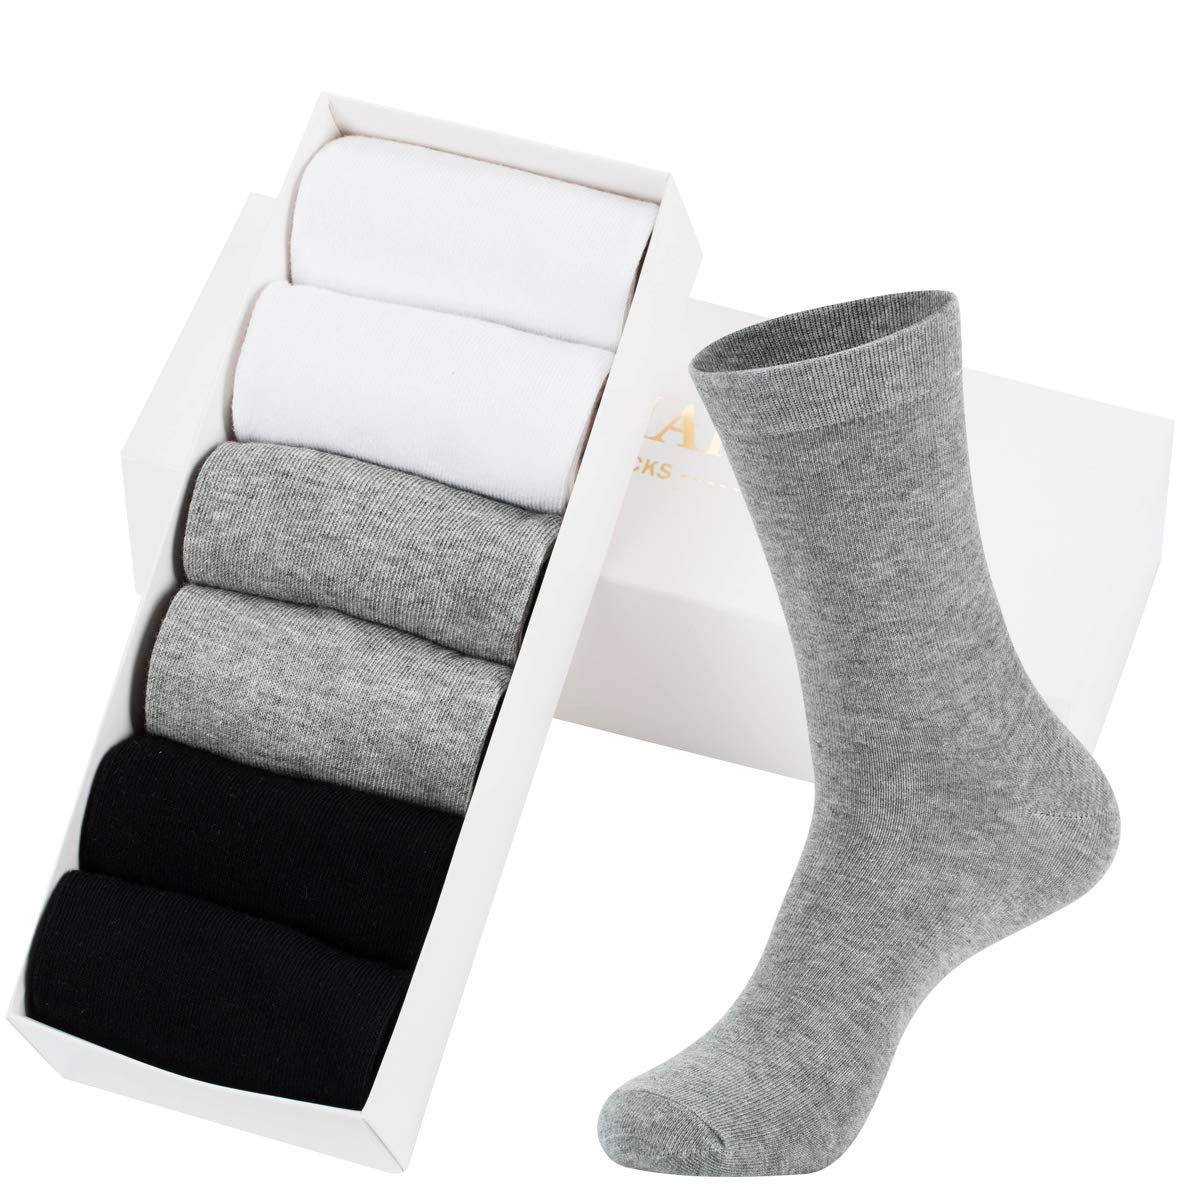 Mens Dress Socks High Ankle Men Casual Dress Socks Cotton 6 /& 12 Pairs by MAGIARTE